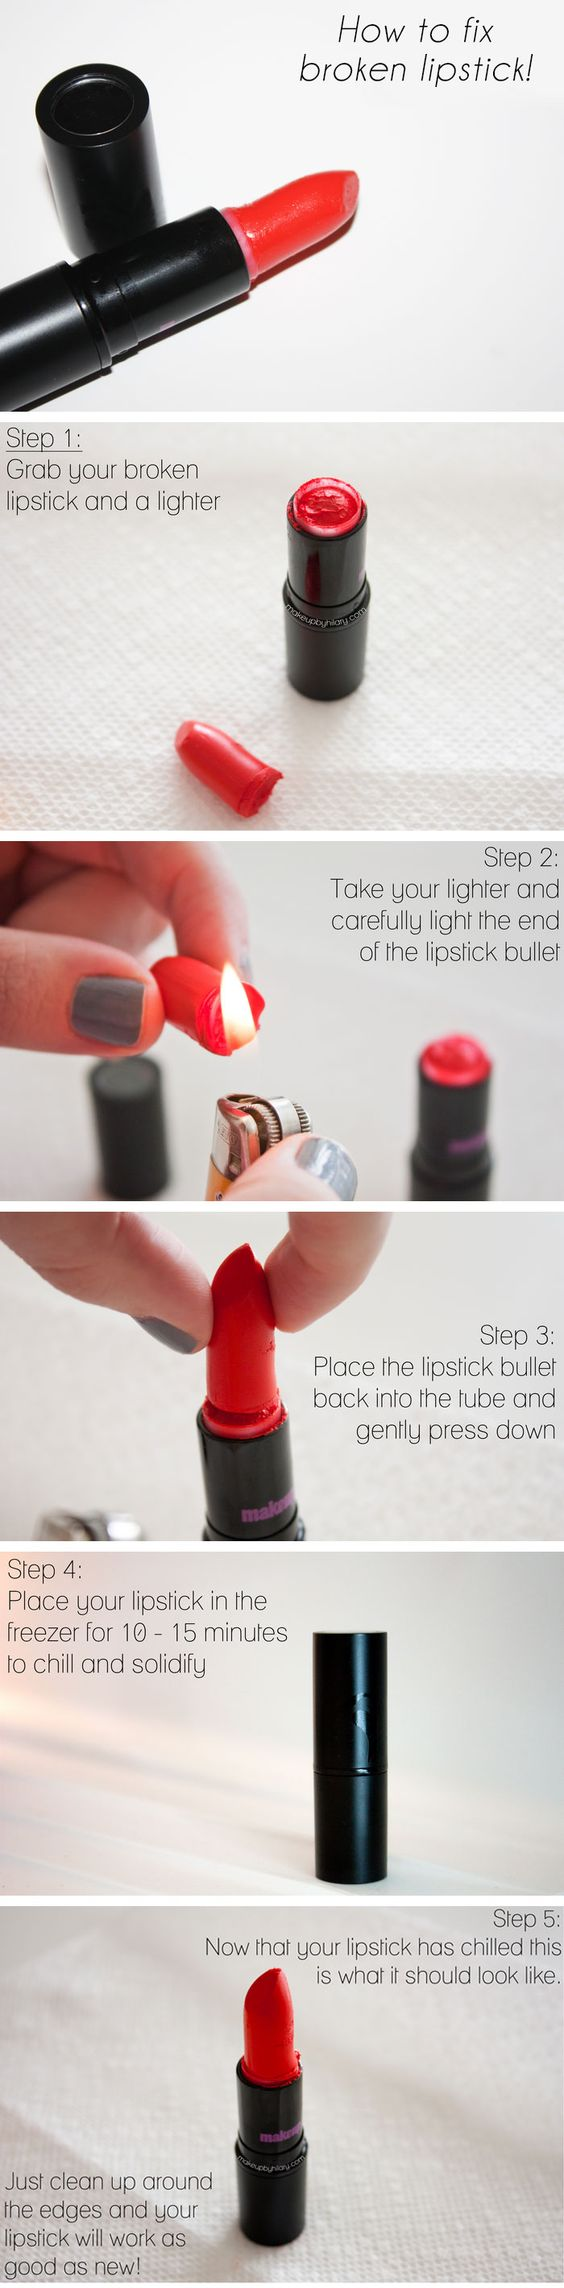 How to Fix Broken Lipstick | Click Pic for 25 Simple Life Hacks Every Girl Should Know | DIY Beauty Hacks Every Girl Should Know: